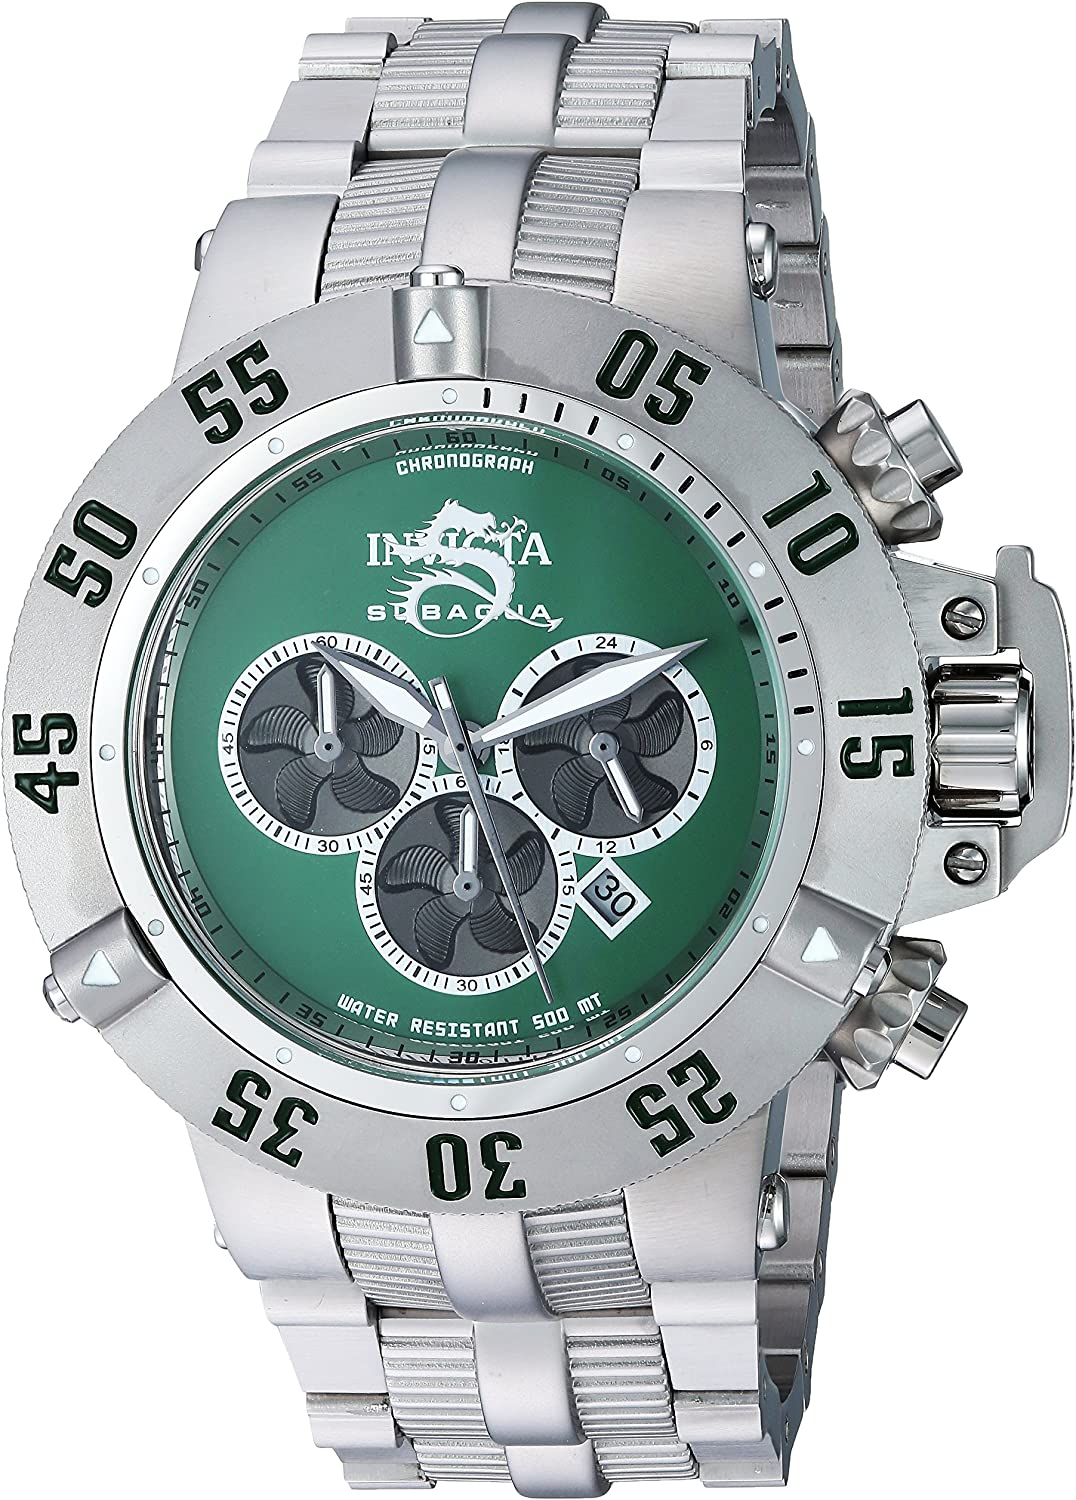 Invicta Men's Subaqua Quartz Watch with Stainless-Steel Strap, Silver, 27 (Model: 24449) 91syKimQVOLUL1500_